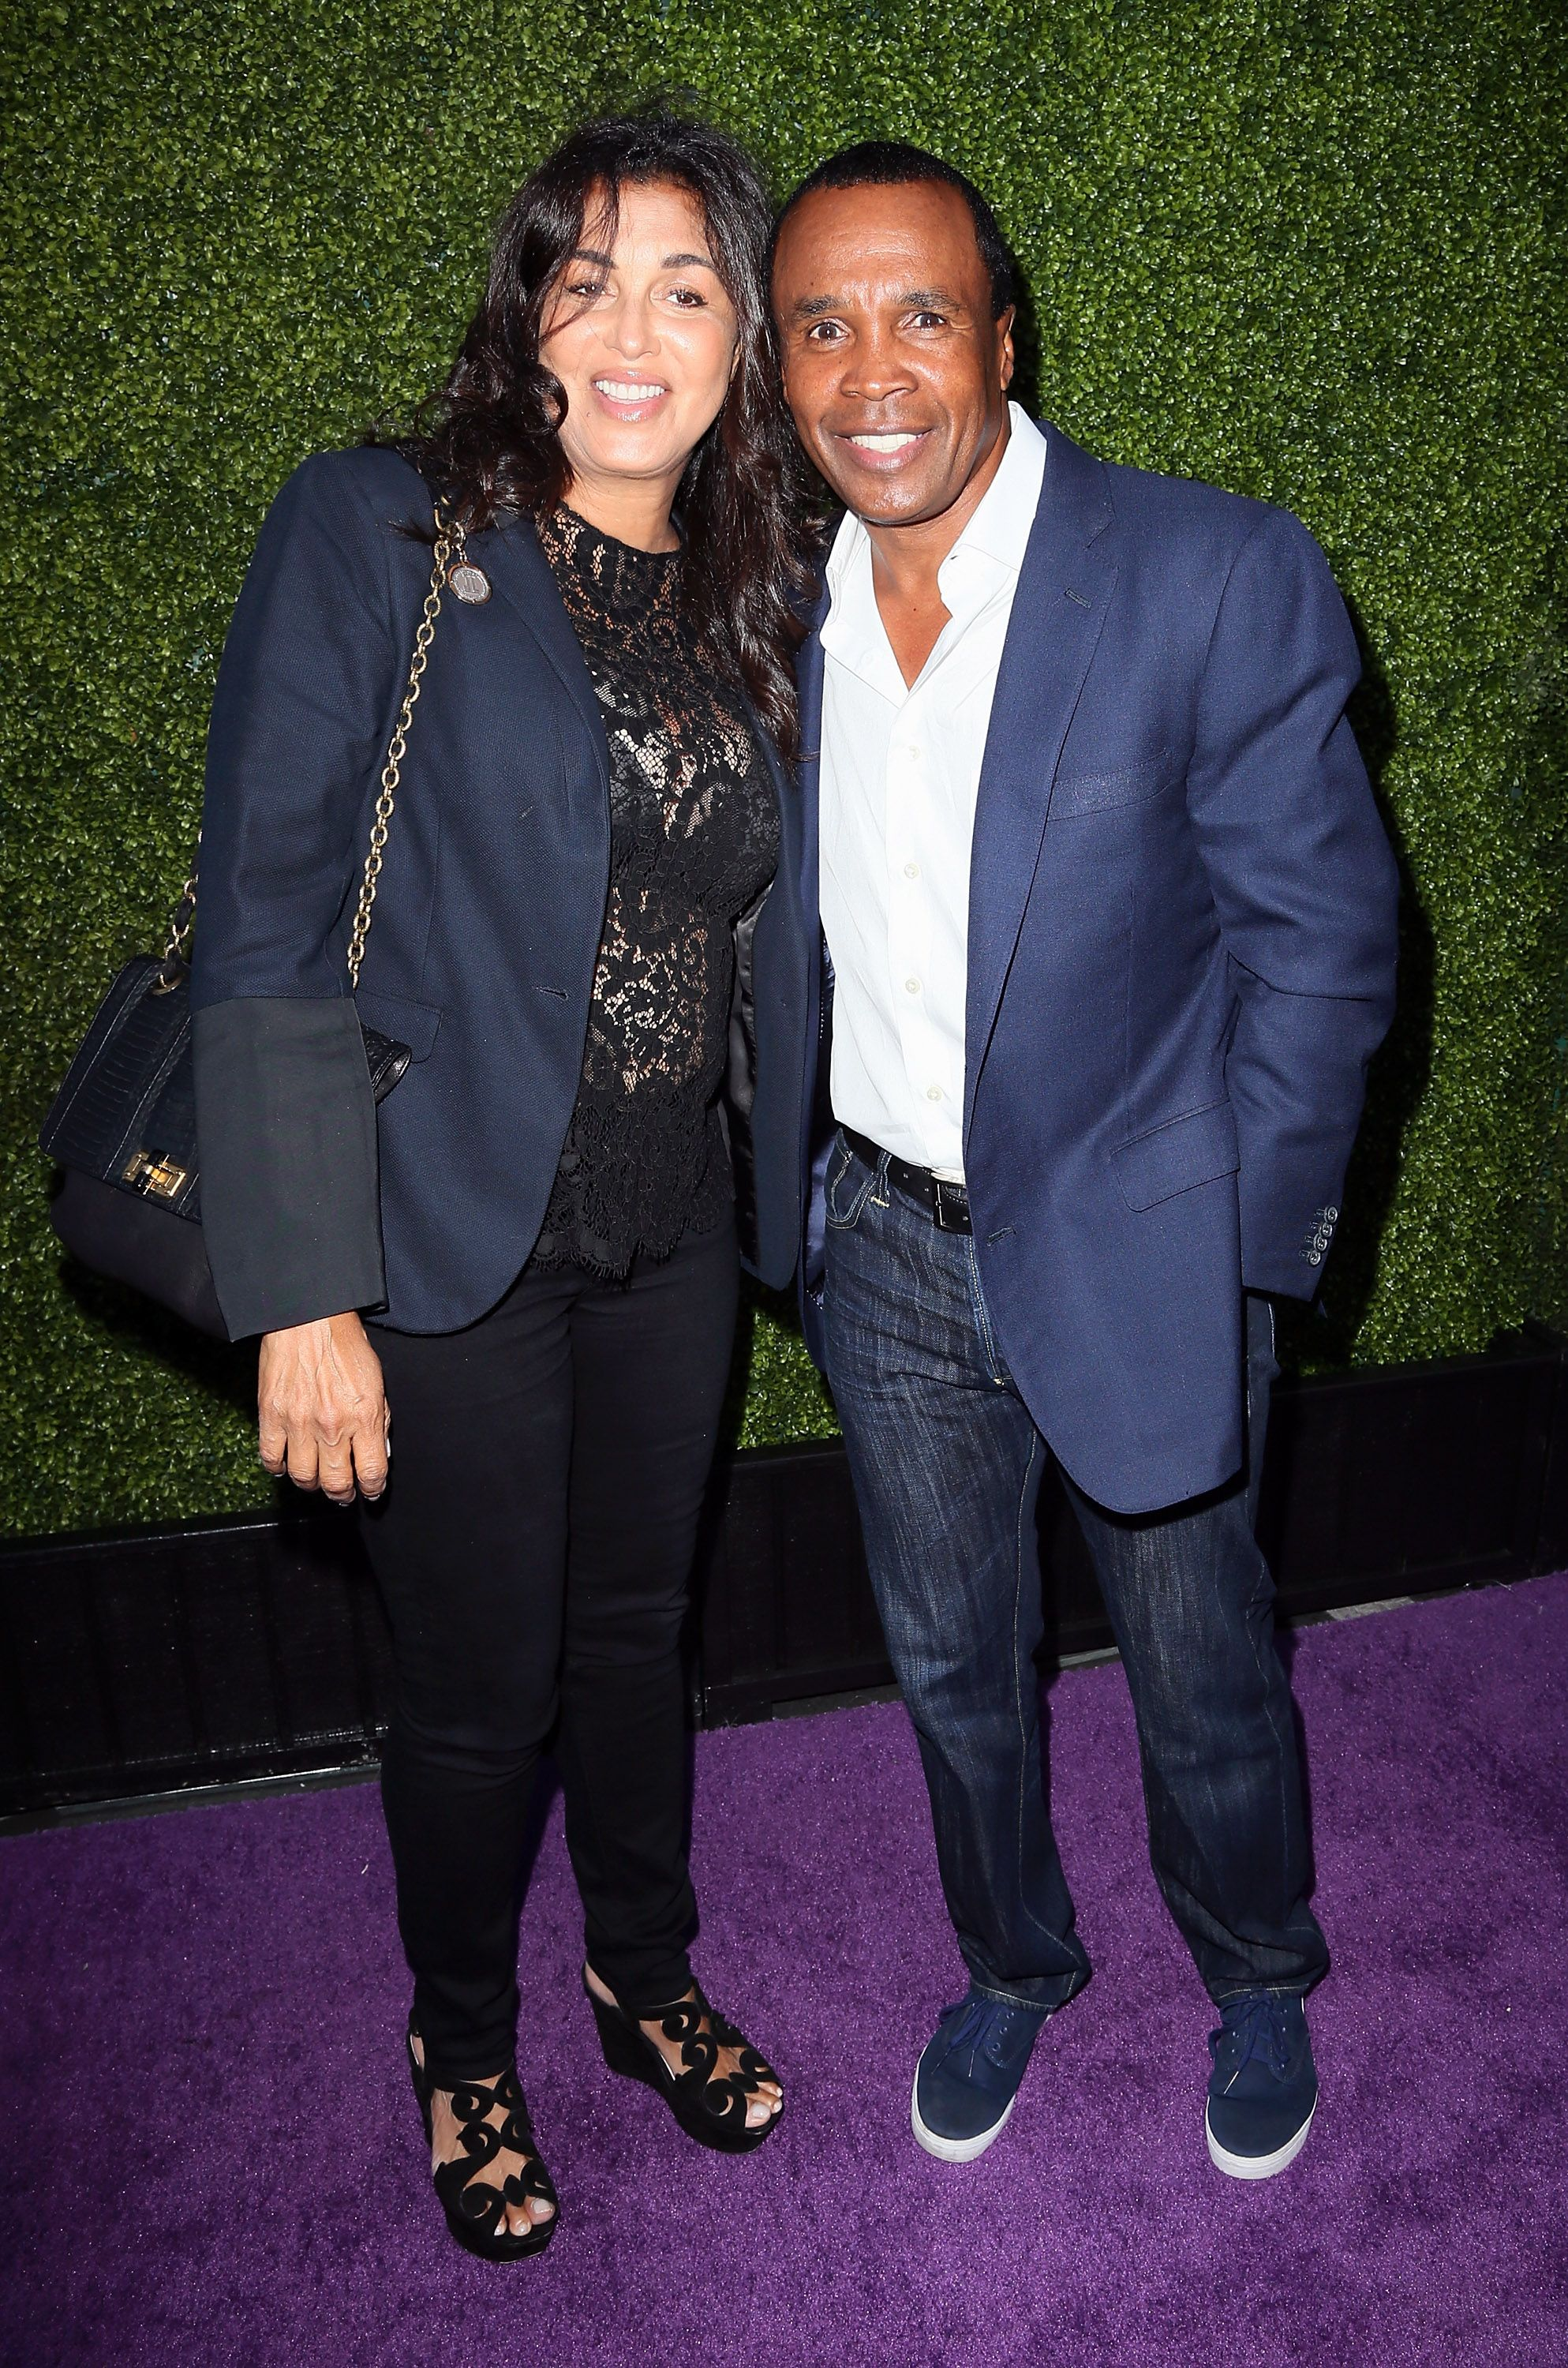 Sugar Ray Leonard and wife Bernadette Leonard at the HollyRod Foundation's 16th Annual DesignCare on July 19, 2014 in Los Angeles. │Photo: Getty Images